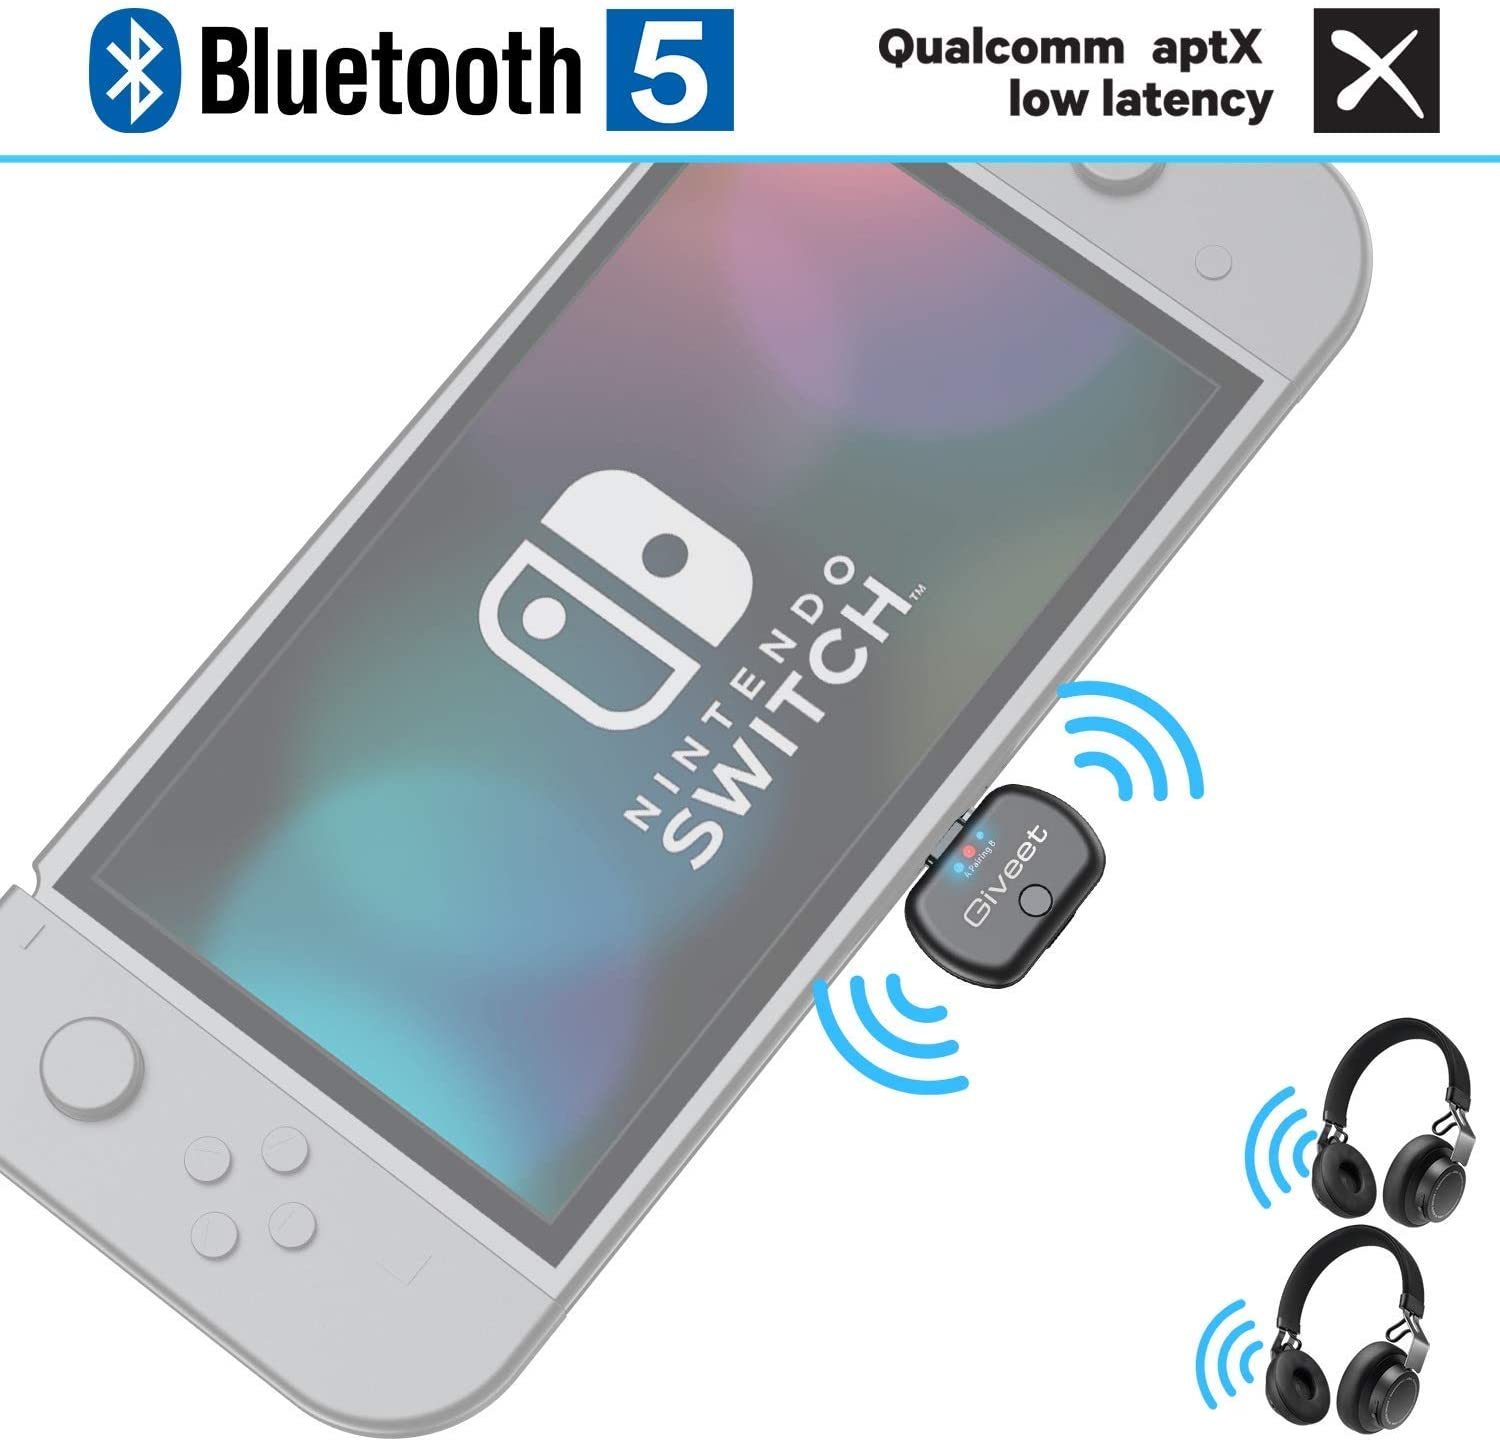 Giveet USB-C Bluetooth Audio Transmitter Adapter Support in-Game Voice Chat, Dual Link aptX Low Latency Compatible with Nintendo Switch, Wireless Gaming Headphones and PC (Renewed)